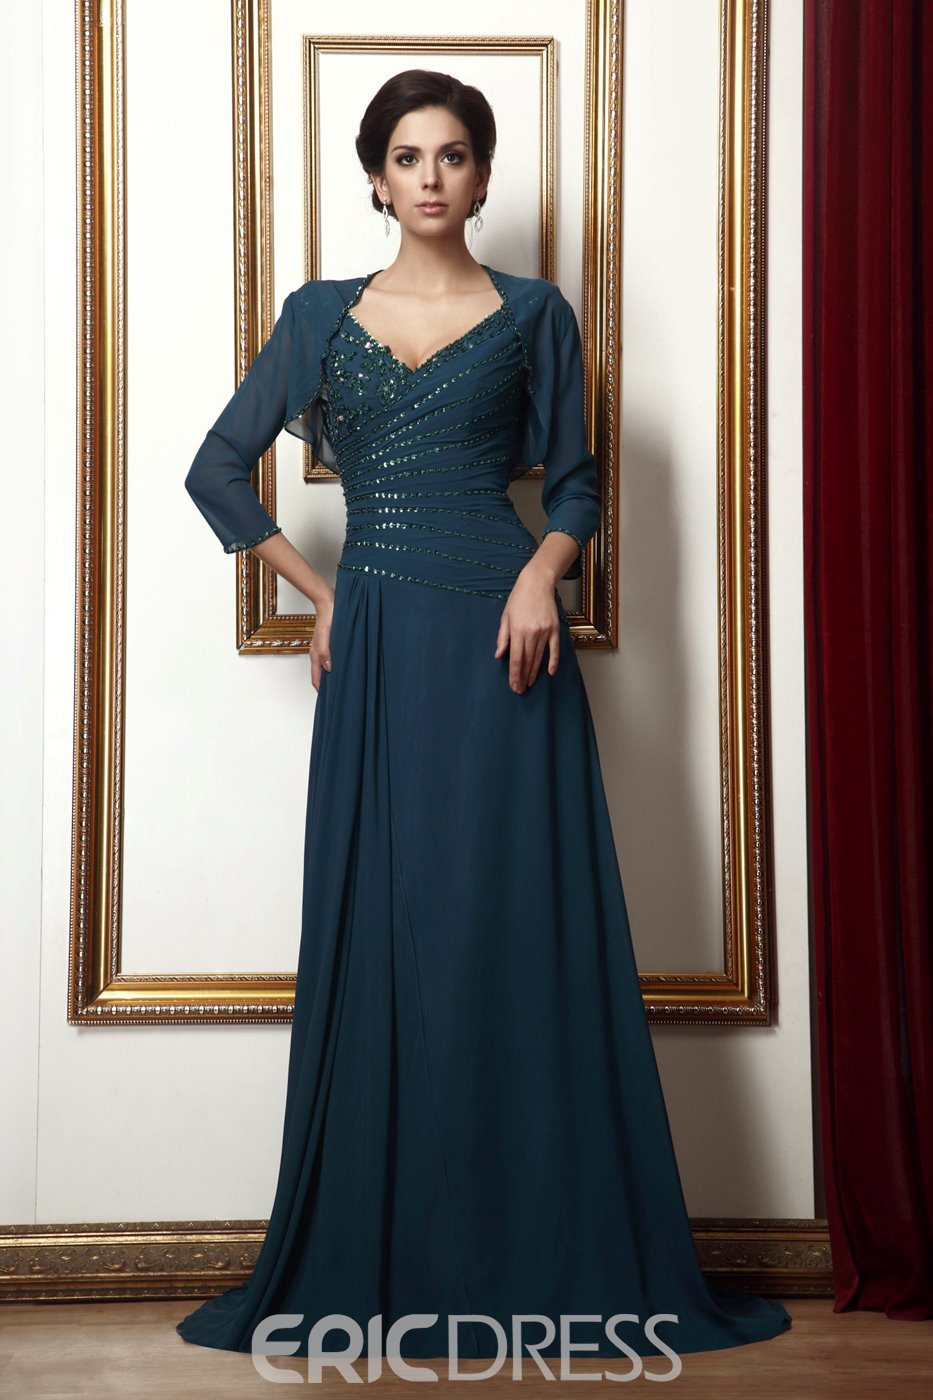 Marvelous Appliques A-Line Floor-Length V-Neck Taline's Mother of the Bride Dress With Jacket/Shawl